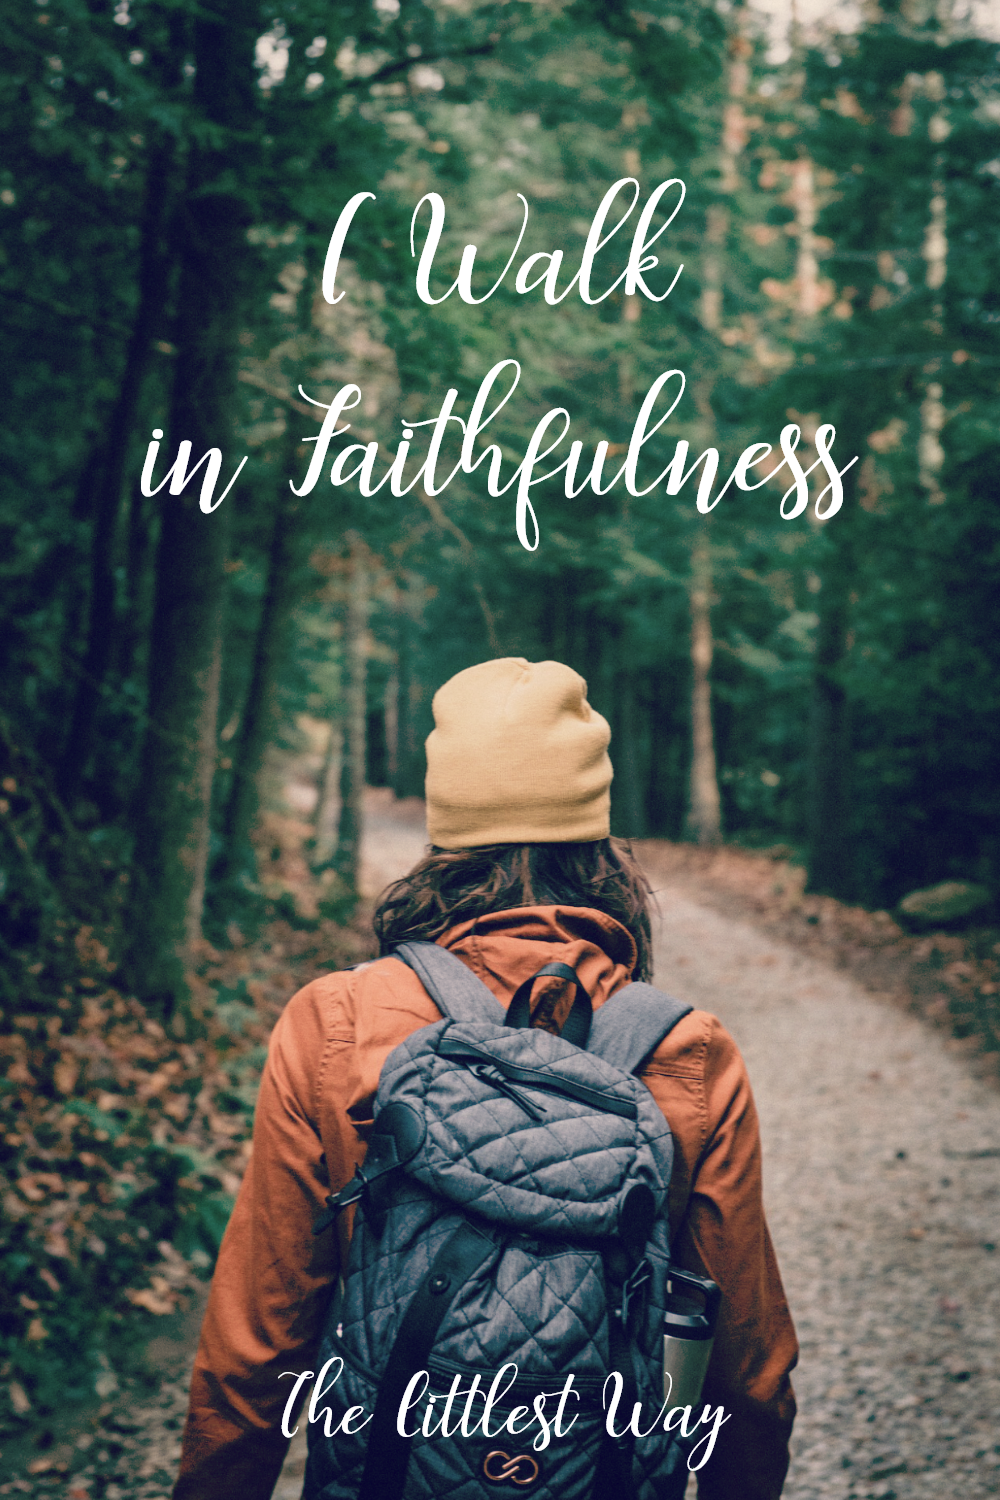 Daily Affirmations I Walk in Faithfulness